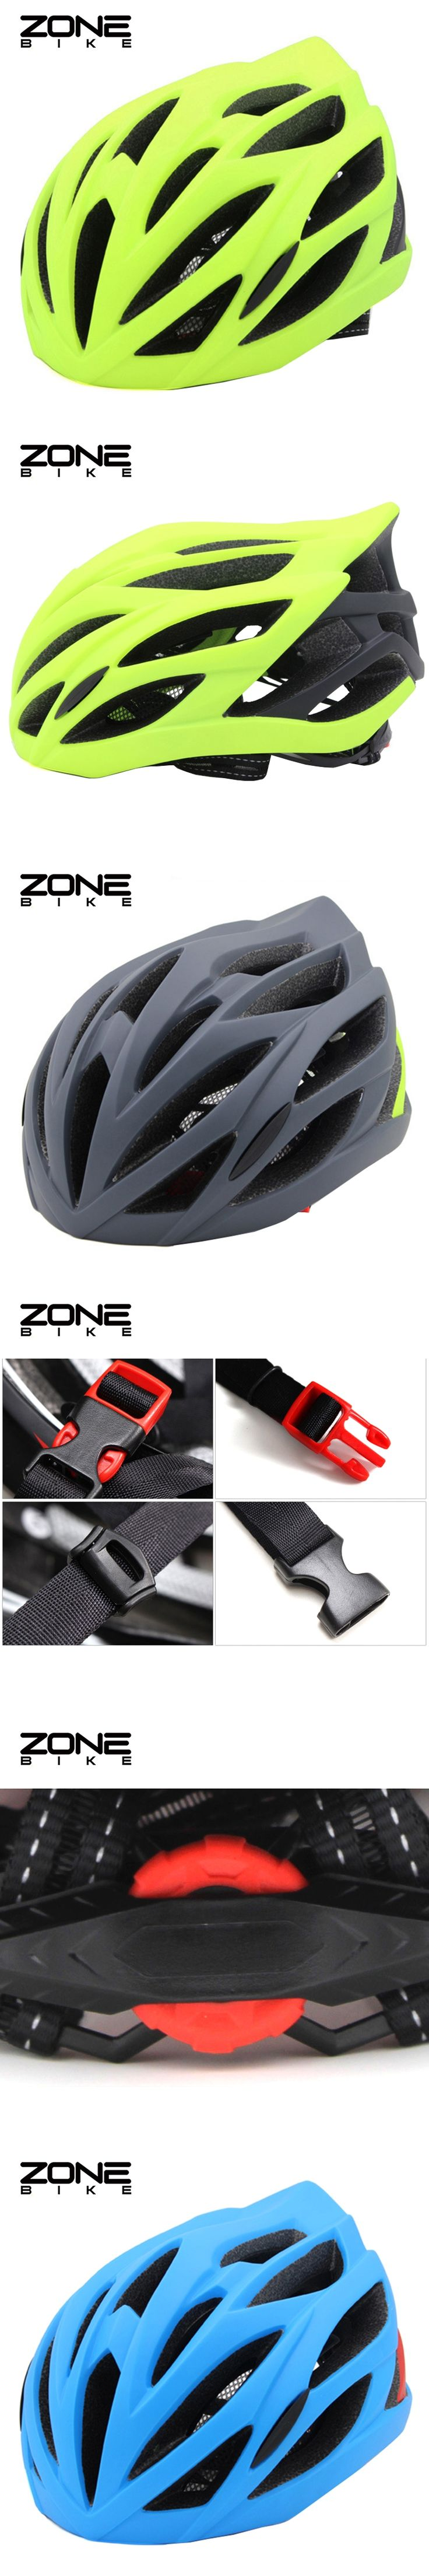 ZONEBIKE Integrally-molded Casco Ciclismo Mtb Road Cycling Bicycle Capacete Bike Helmet Casque Velo Route EPS Bisiklet Kask